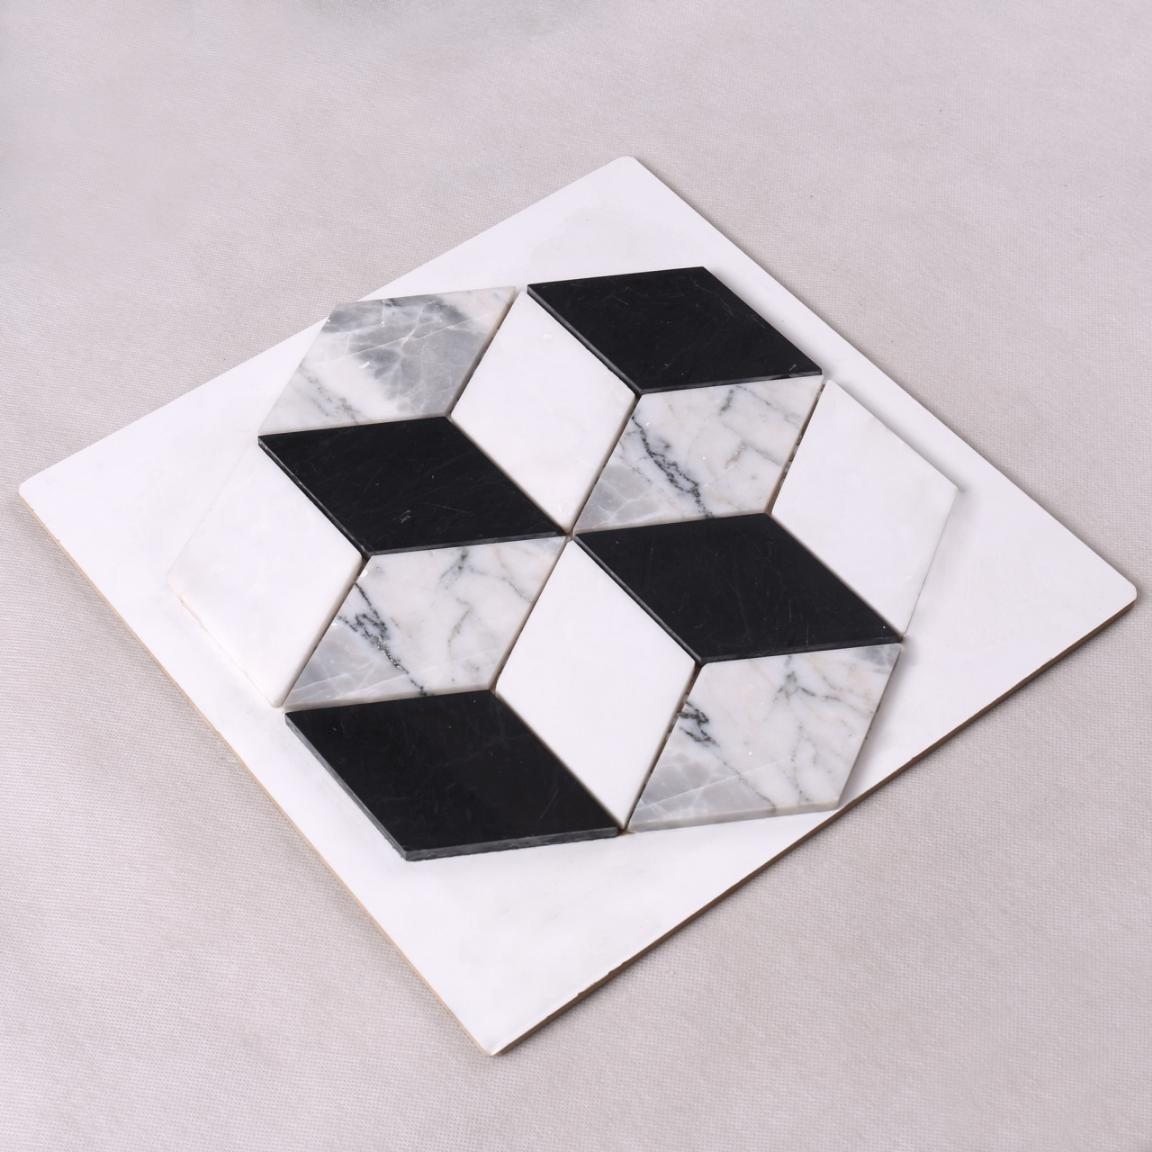 Heng Xing mosaic carrara herringbone company for backsplash-2